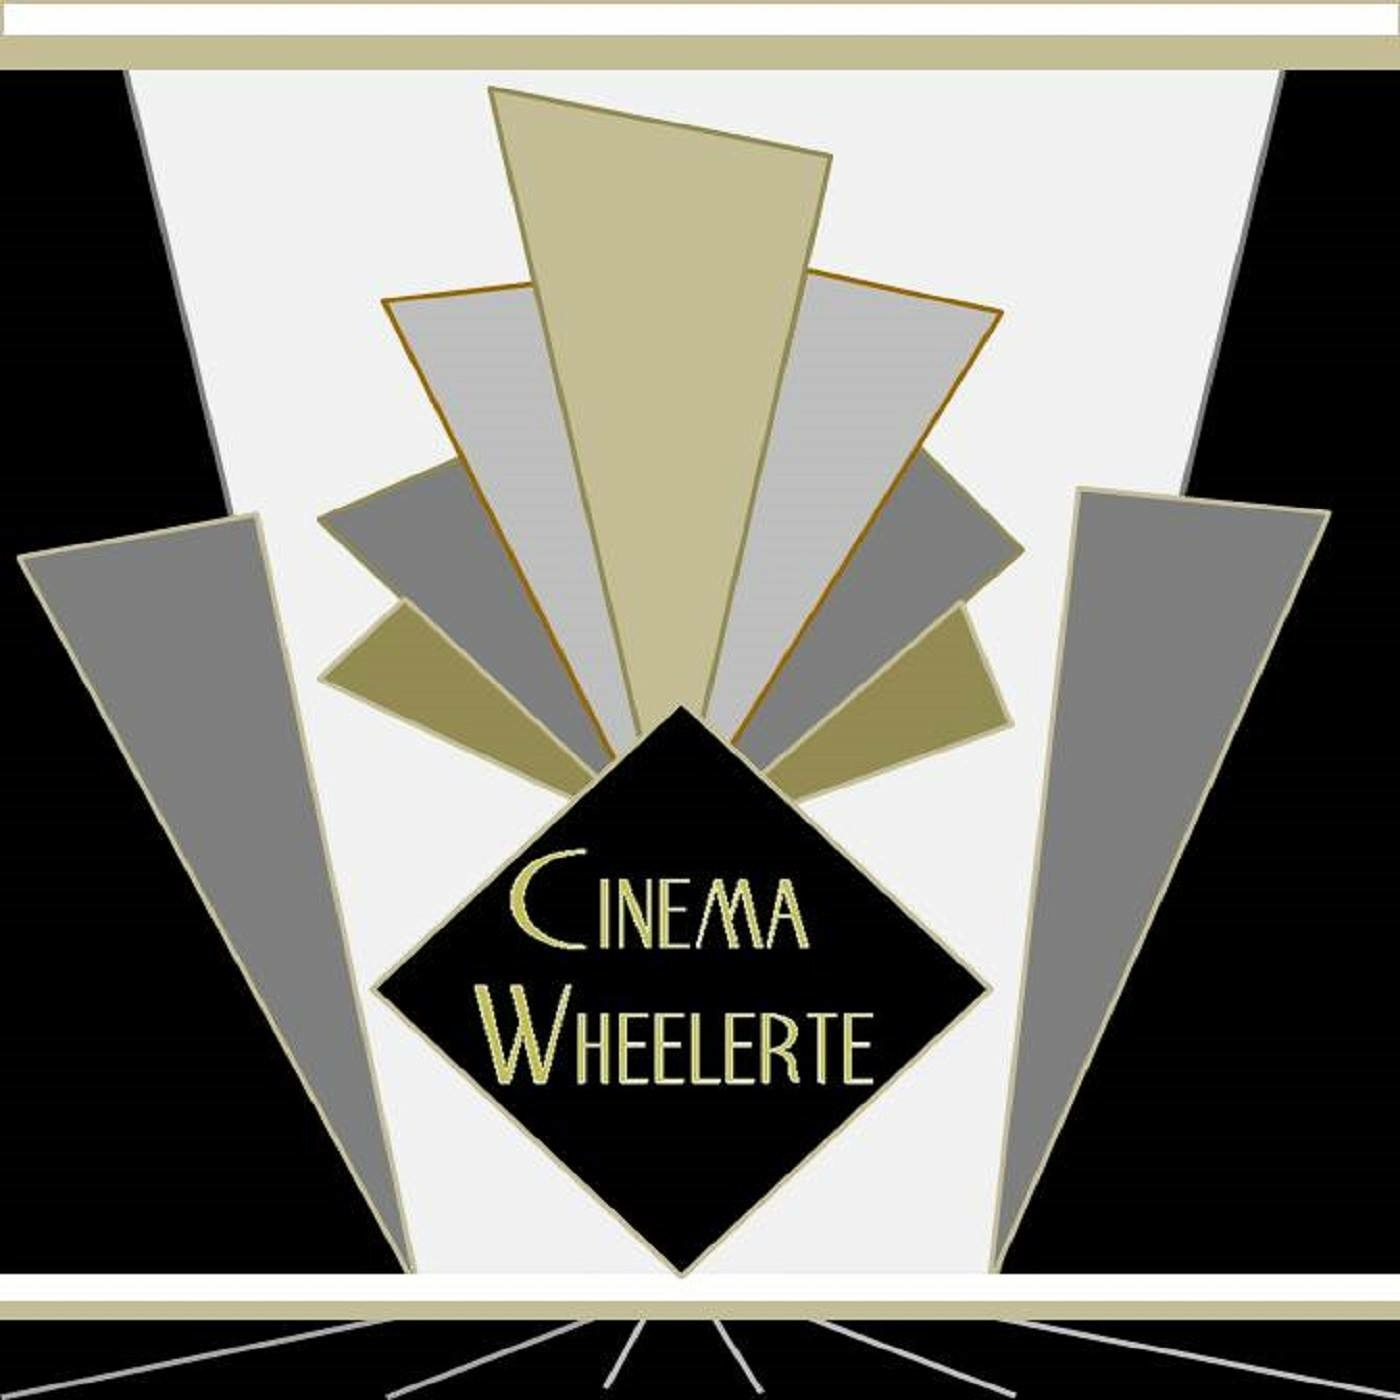 Cinema Wheelerte